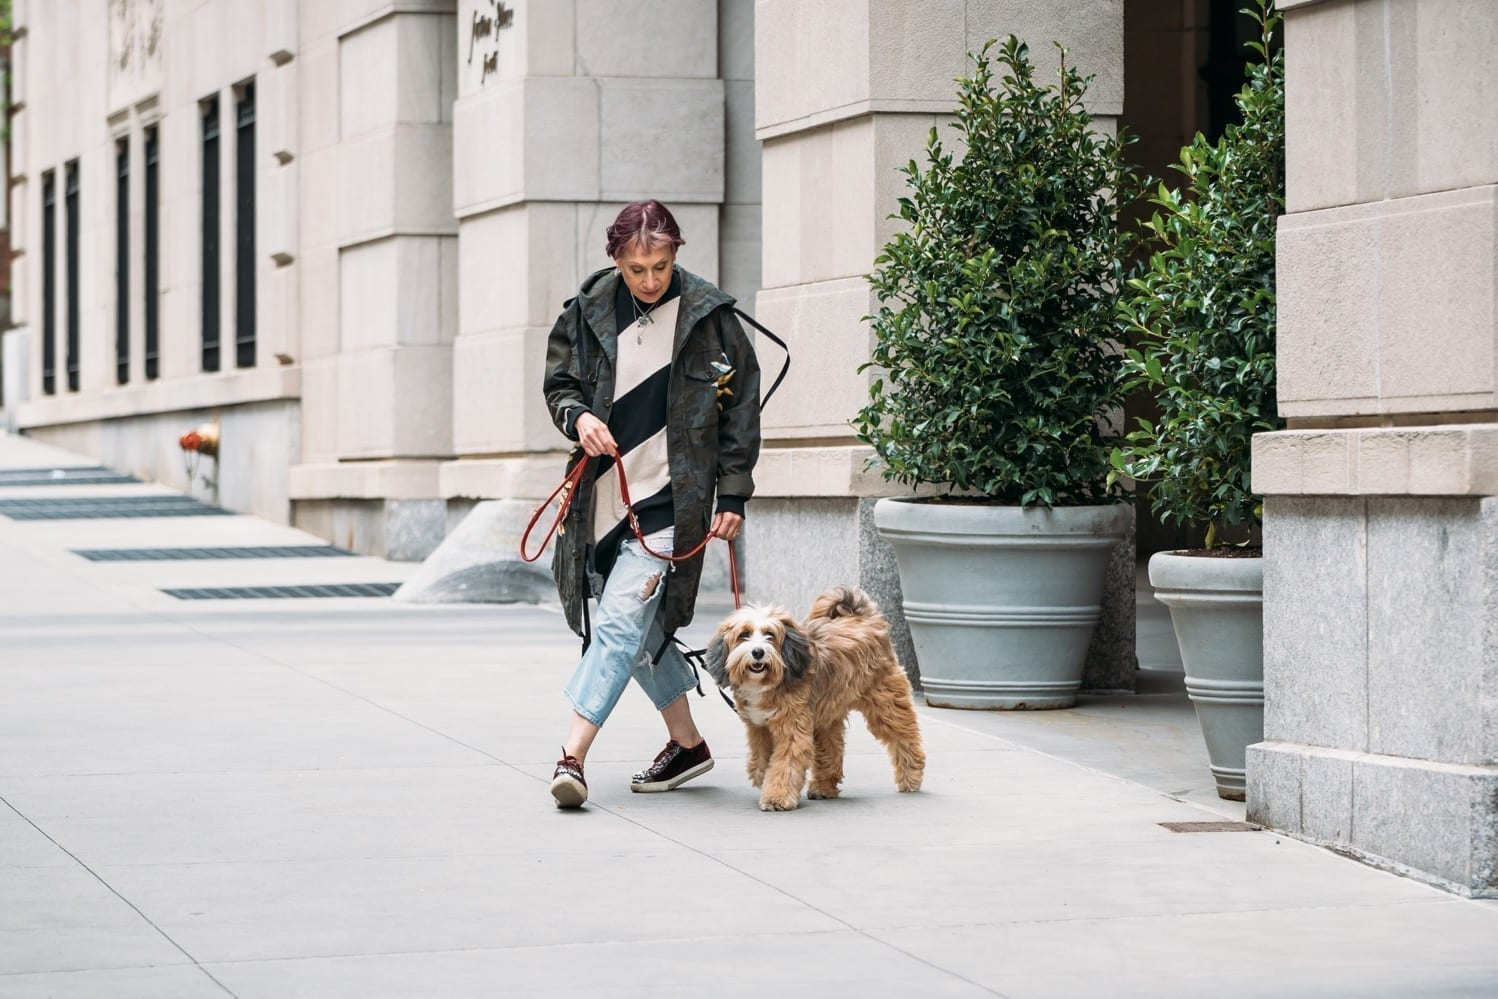 Dog Relations NYC trainer Elisabeth Weiss walking with Buddy